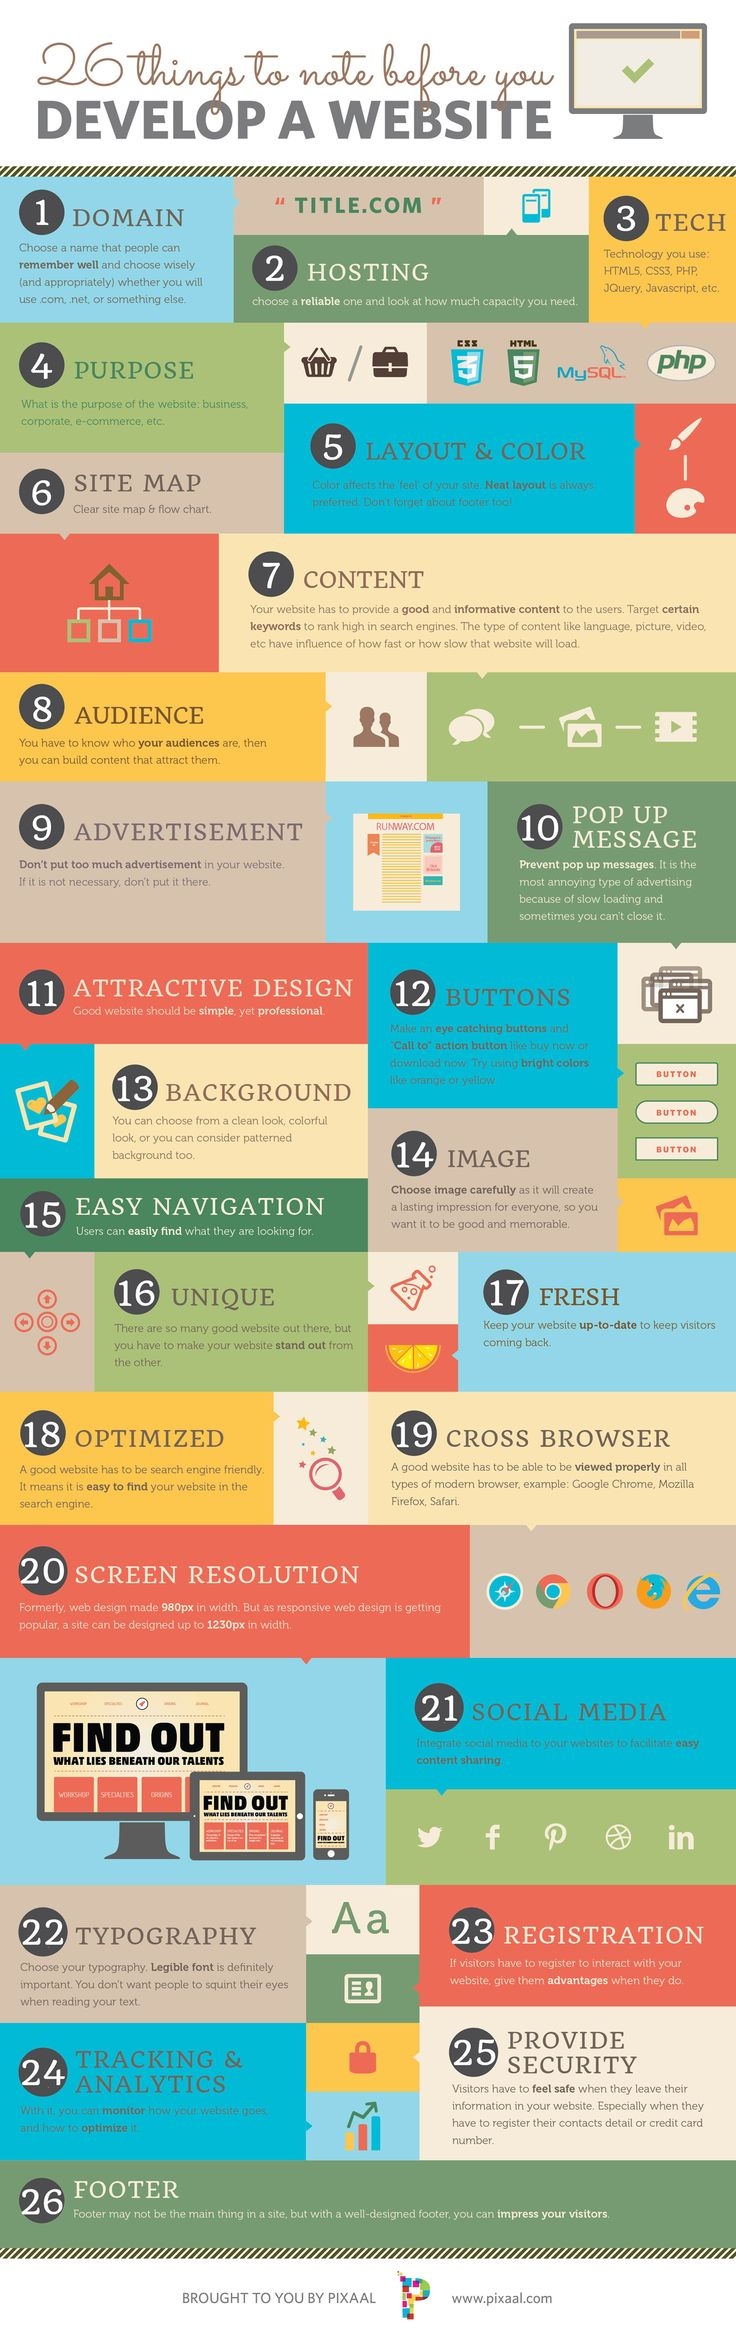 The best images about design on pinterest logos business cards